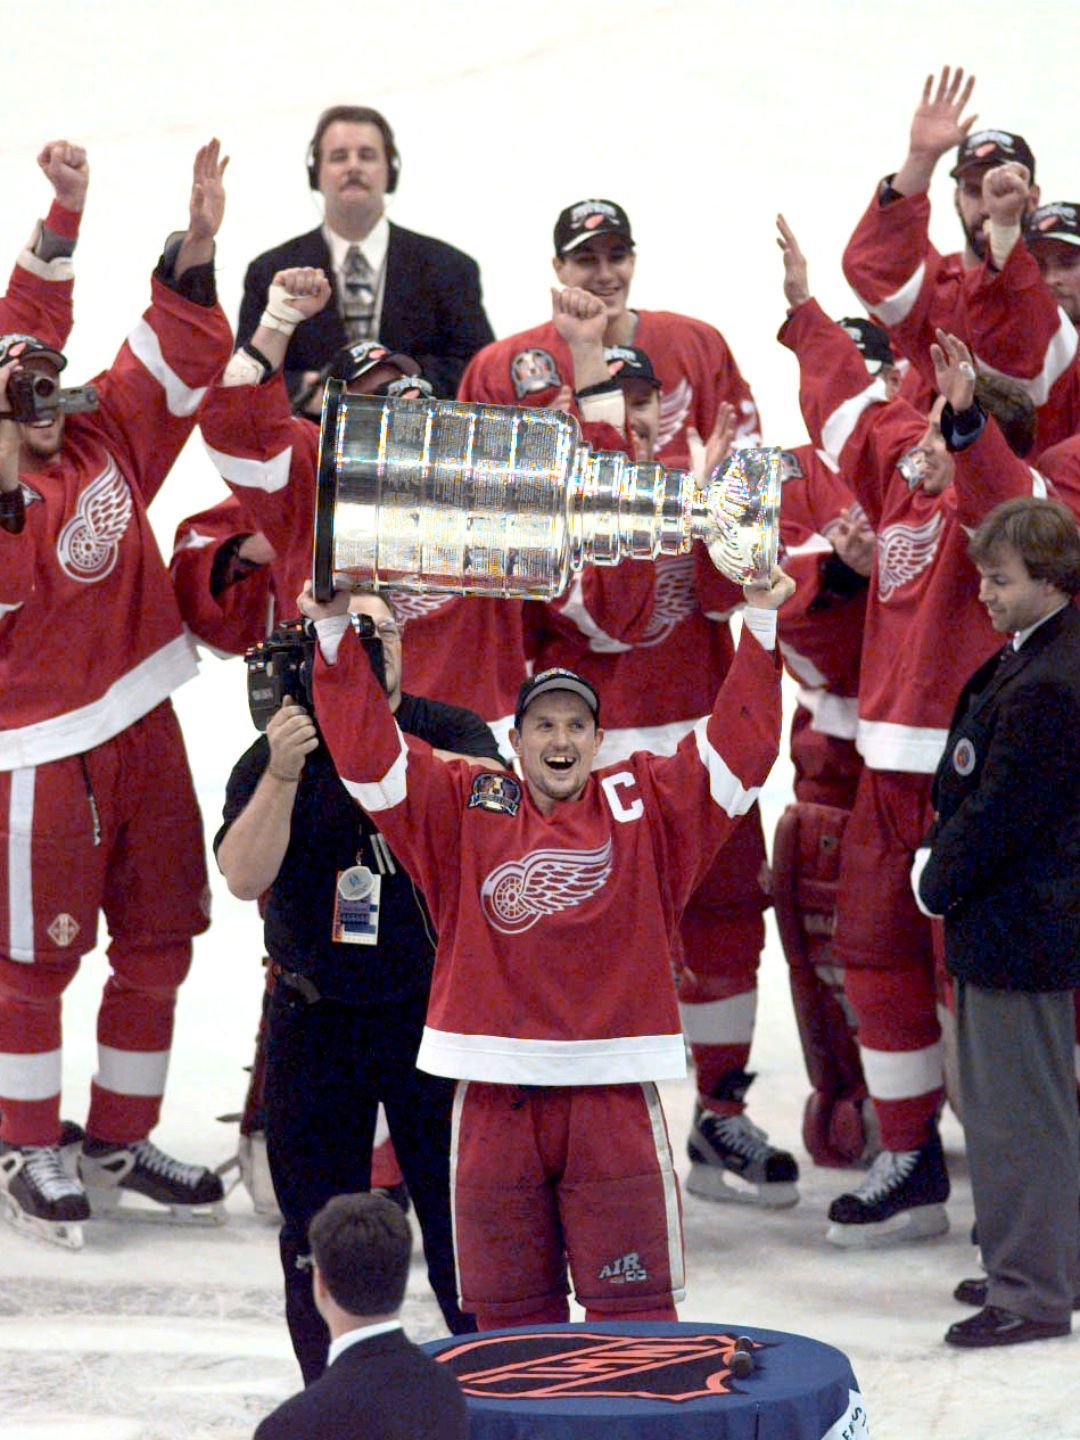 Steve Yzerman hoists the Stanley Cup again at the end of